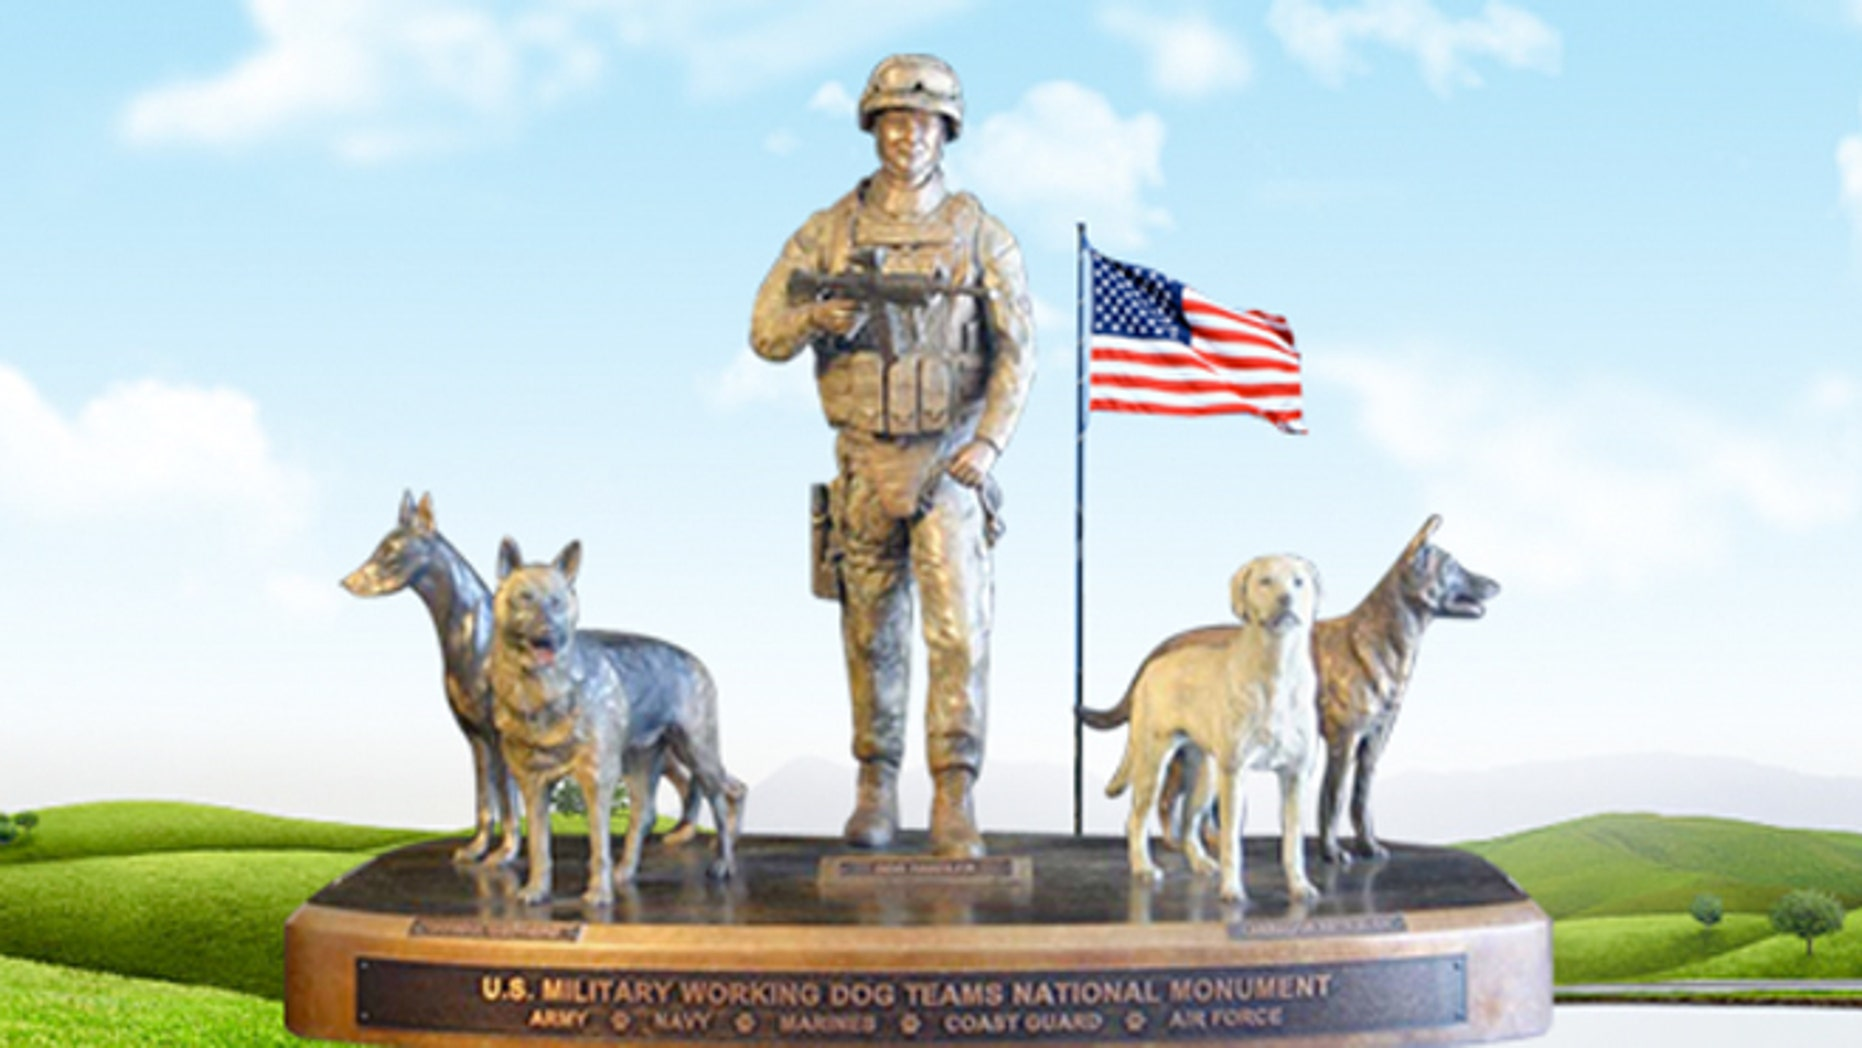 The Military Working Dog Teams National Monument